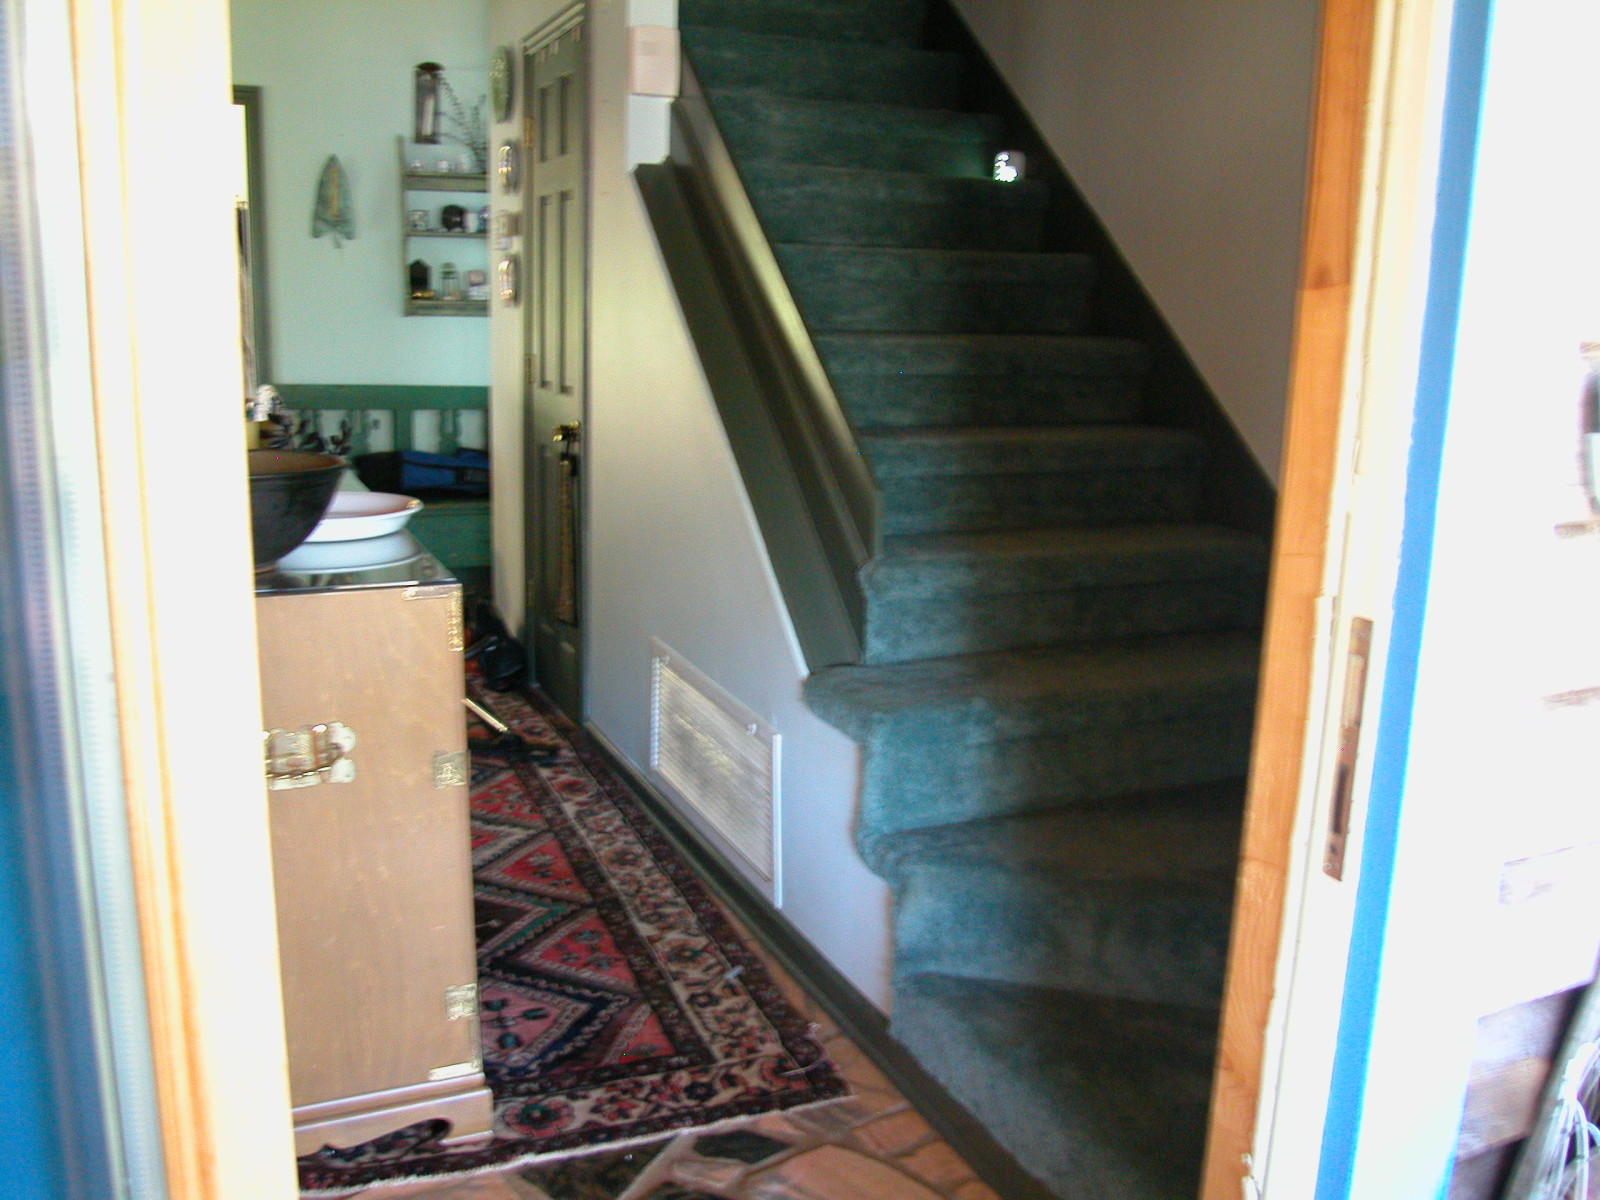 Existing stairs prior to remodeling, carpet and no handrails